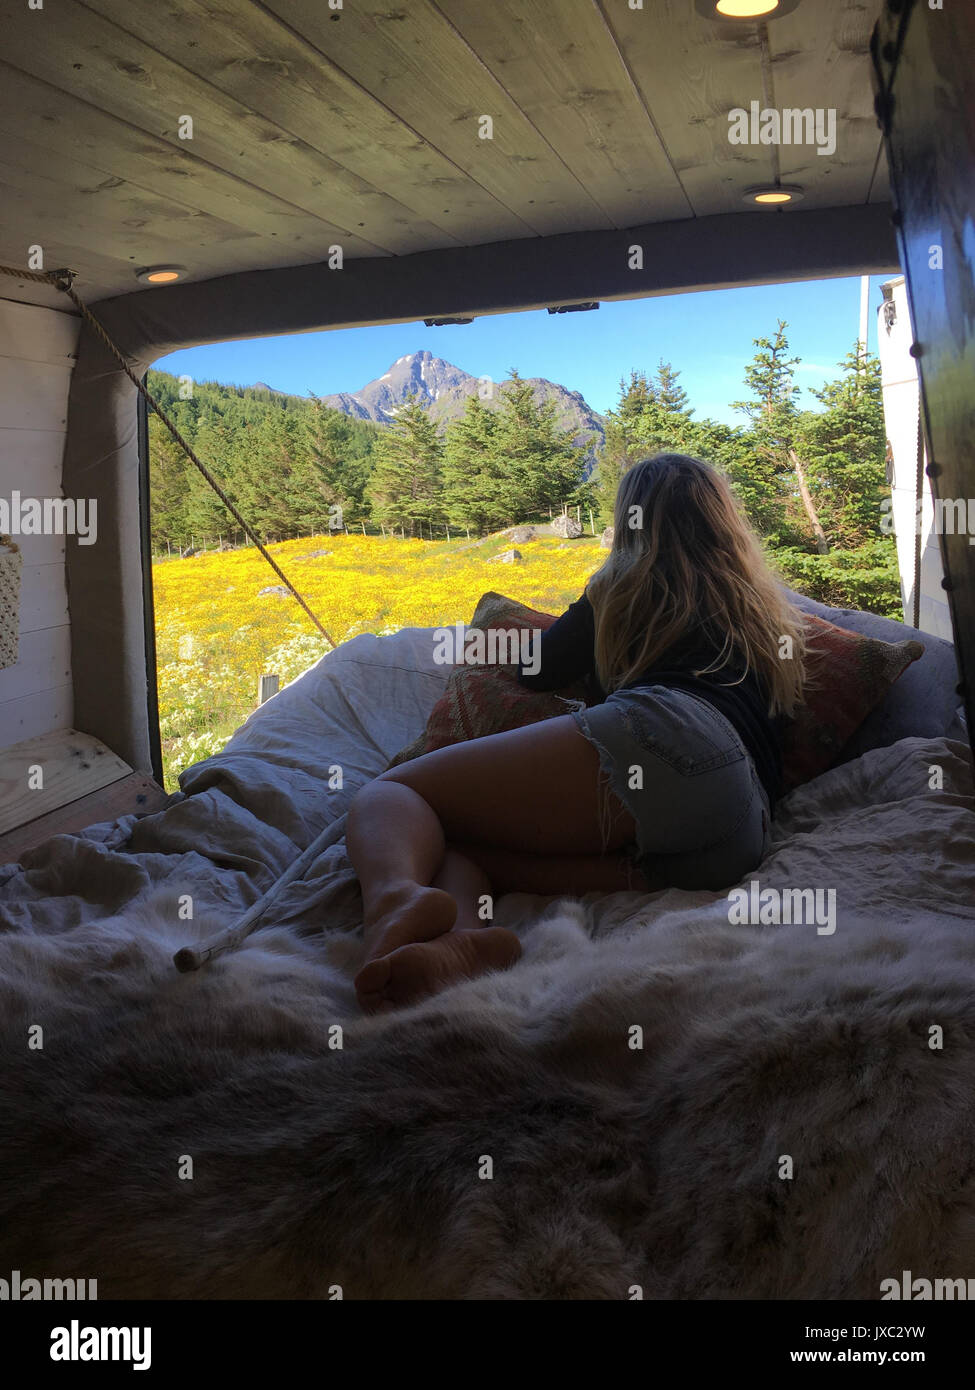 MEET the adventurous couple who packed up their life into a small van so they could travel and surf whenever they like. Incredible images and video fo - Stock Image